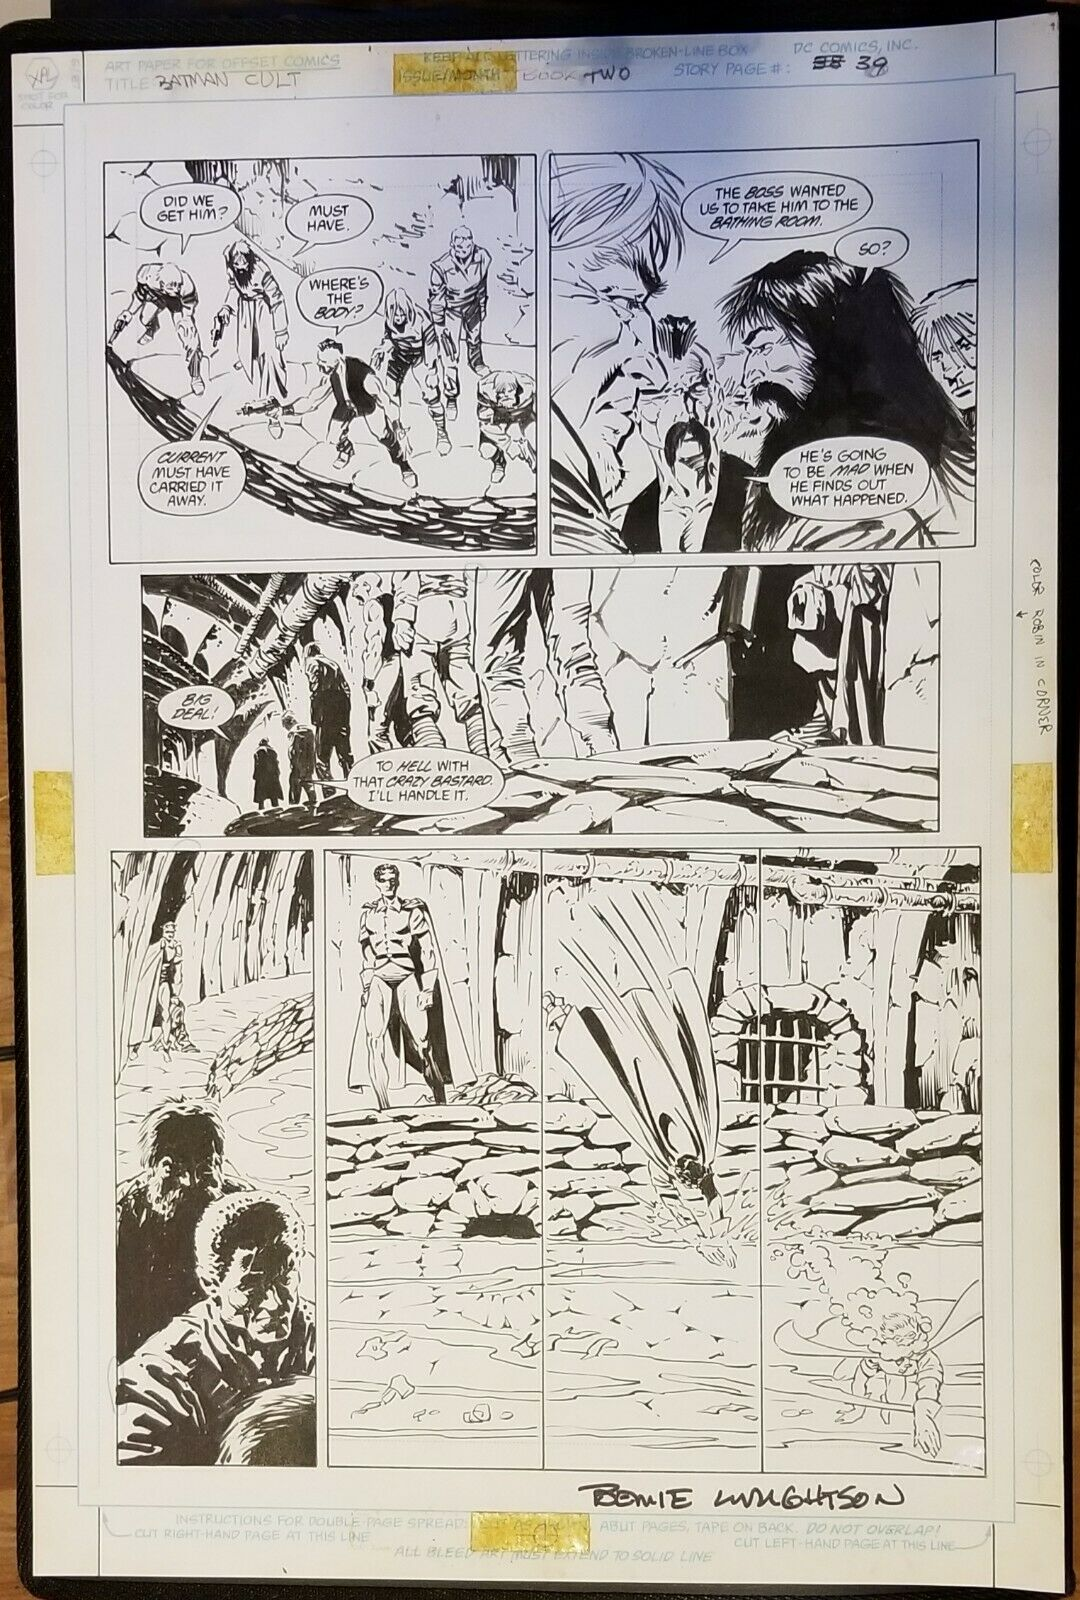 Batman the CULT #2 page 39, pen & Ink. Bernie Wrightson original art.